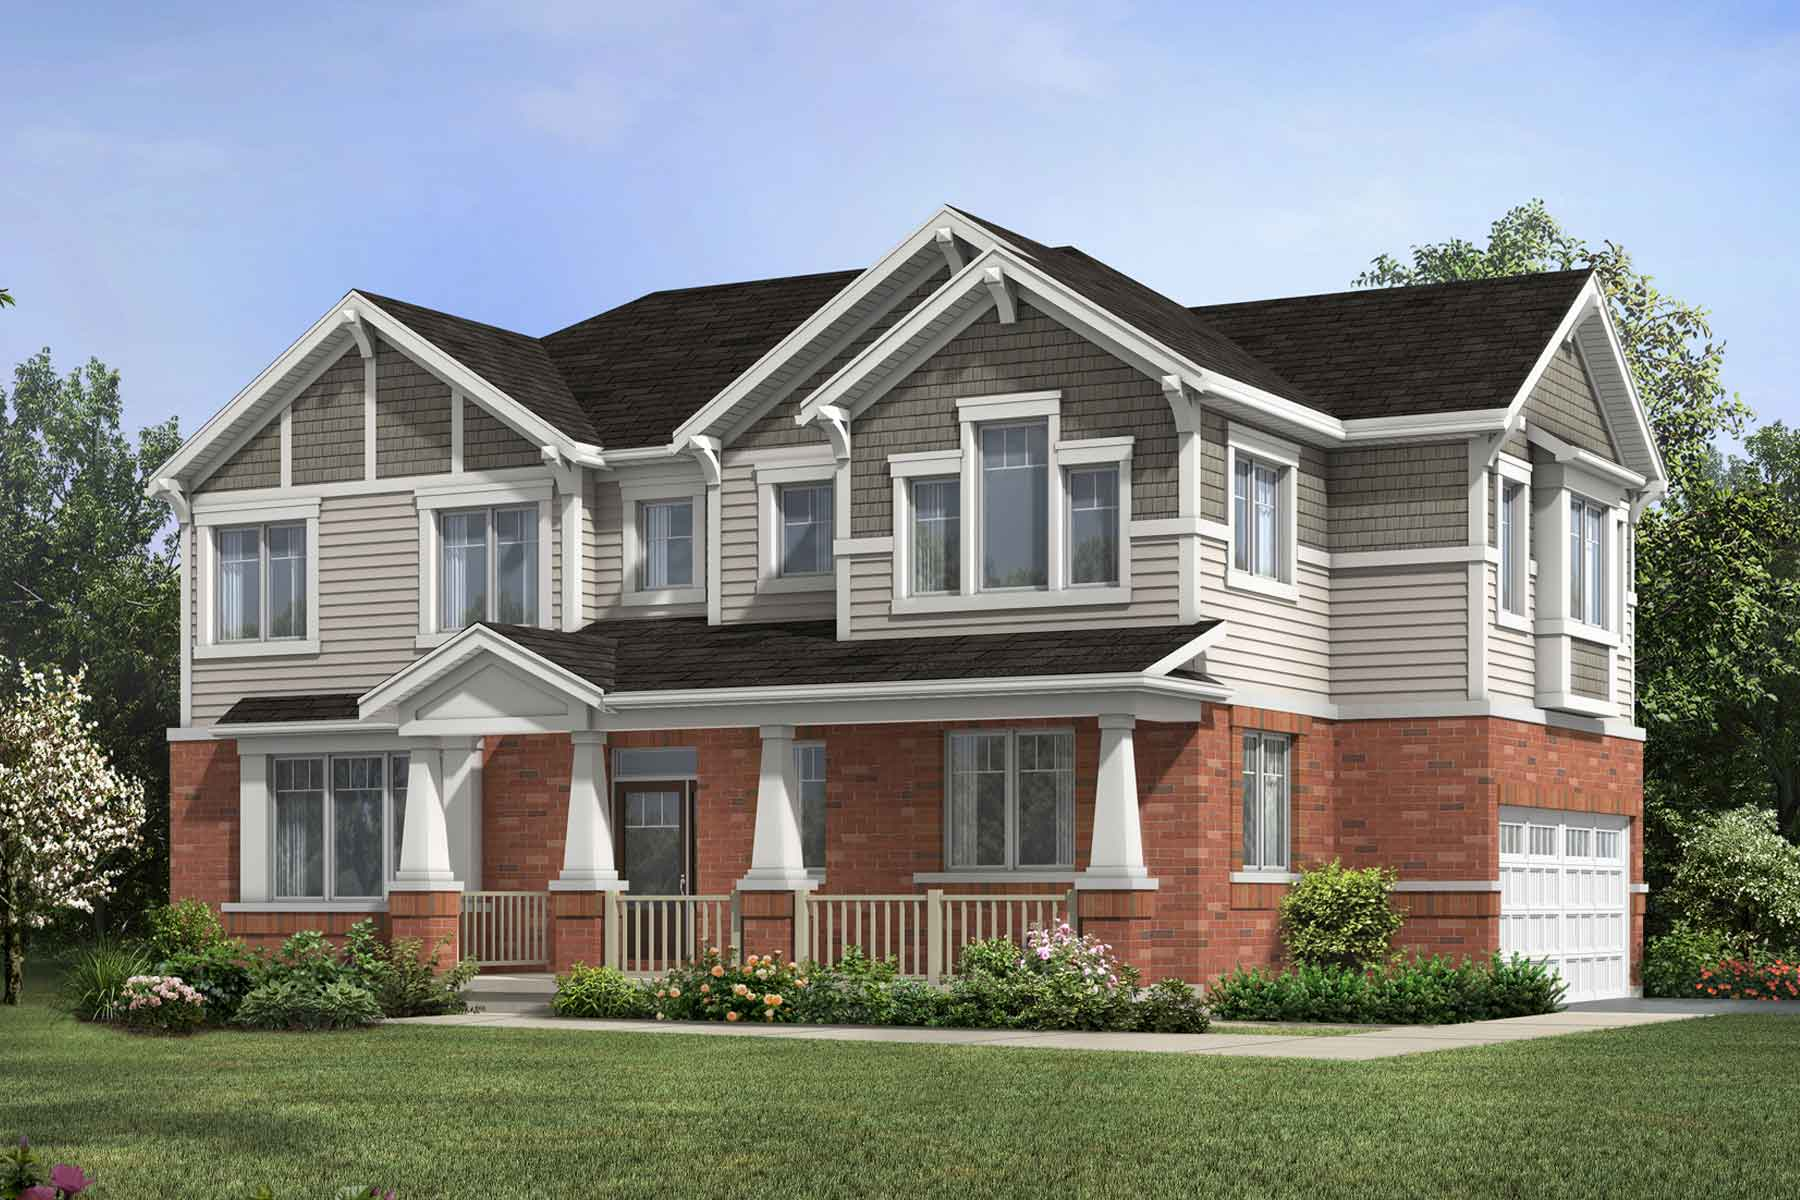 Wildflower Crossing TownHomes in Kitchener Ontario by Mattamy Homes